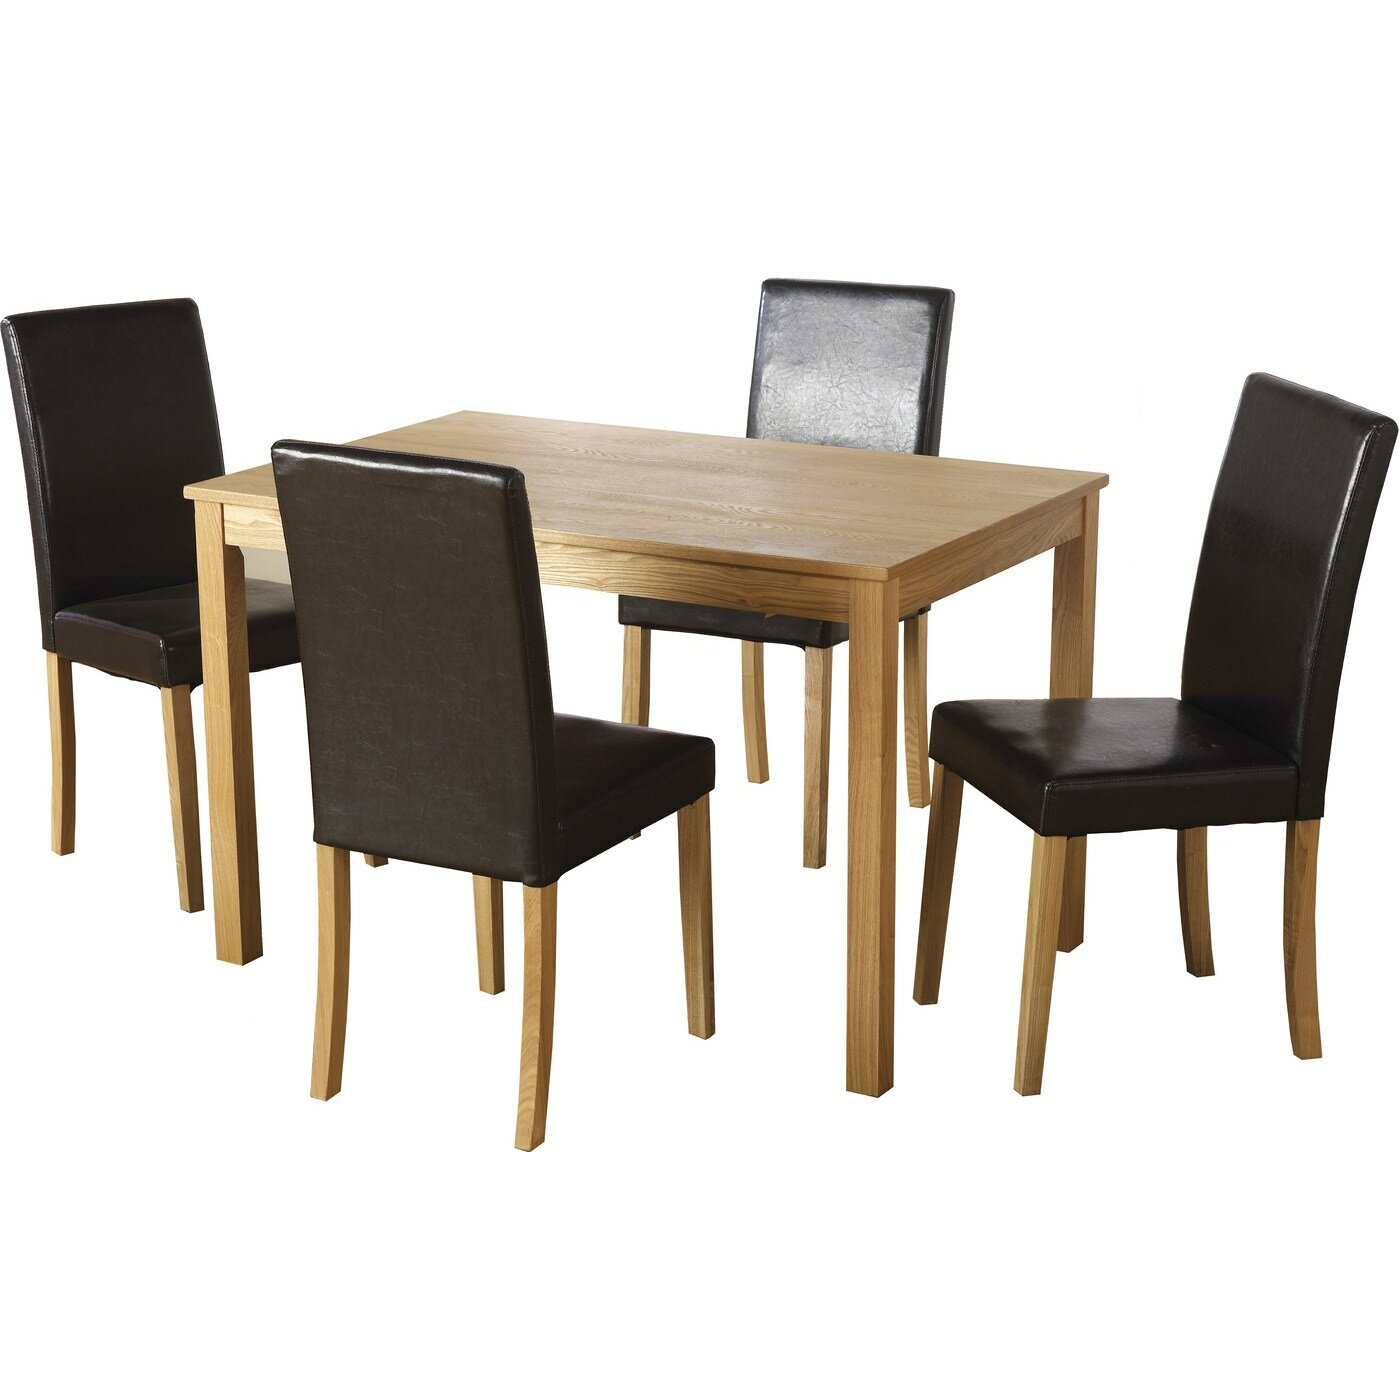 Anns dining table and 4 chairs wayfair uk for Small dining table and 4 chairs